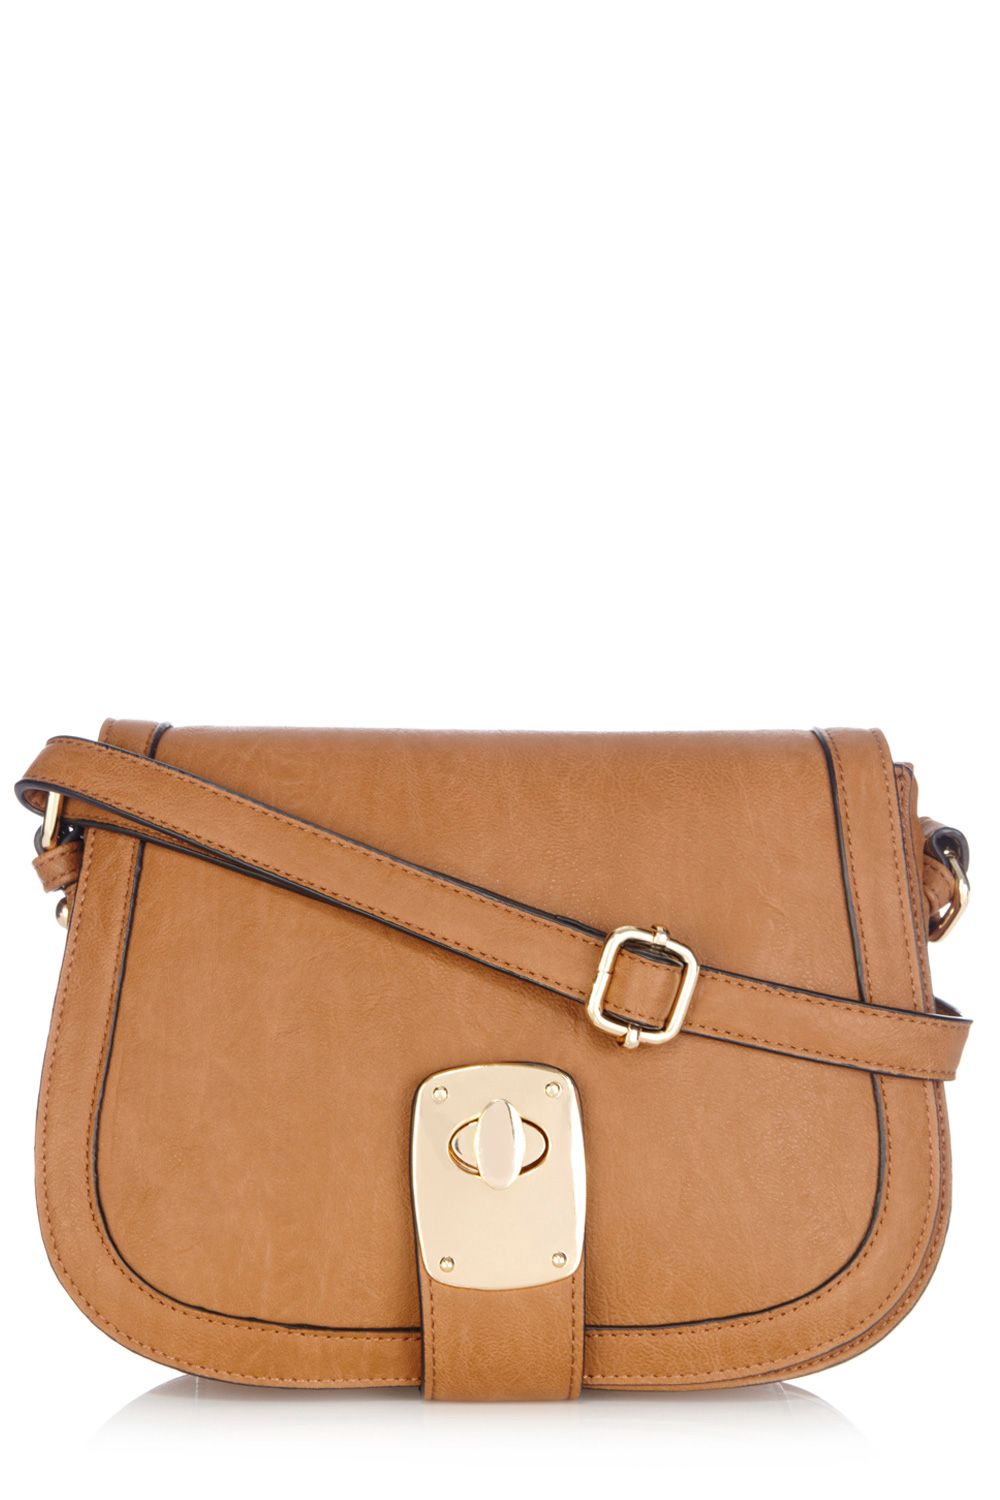 Danielle saddle bag